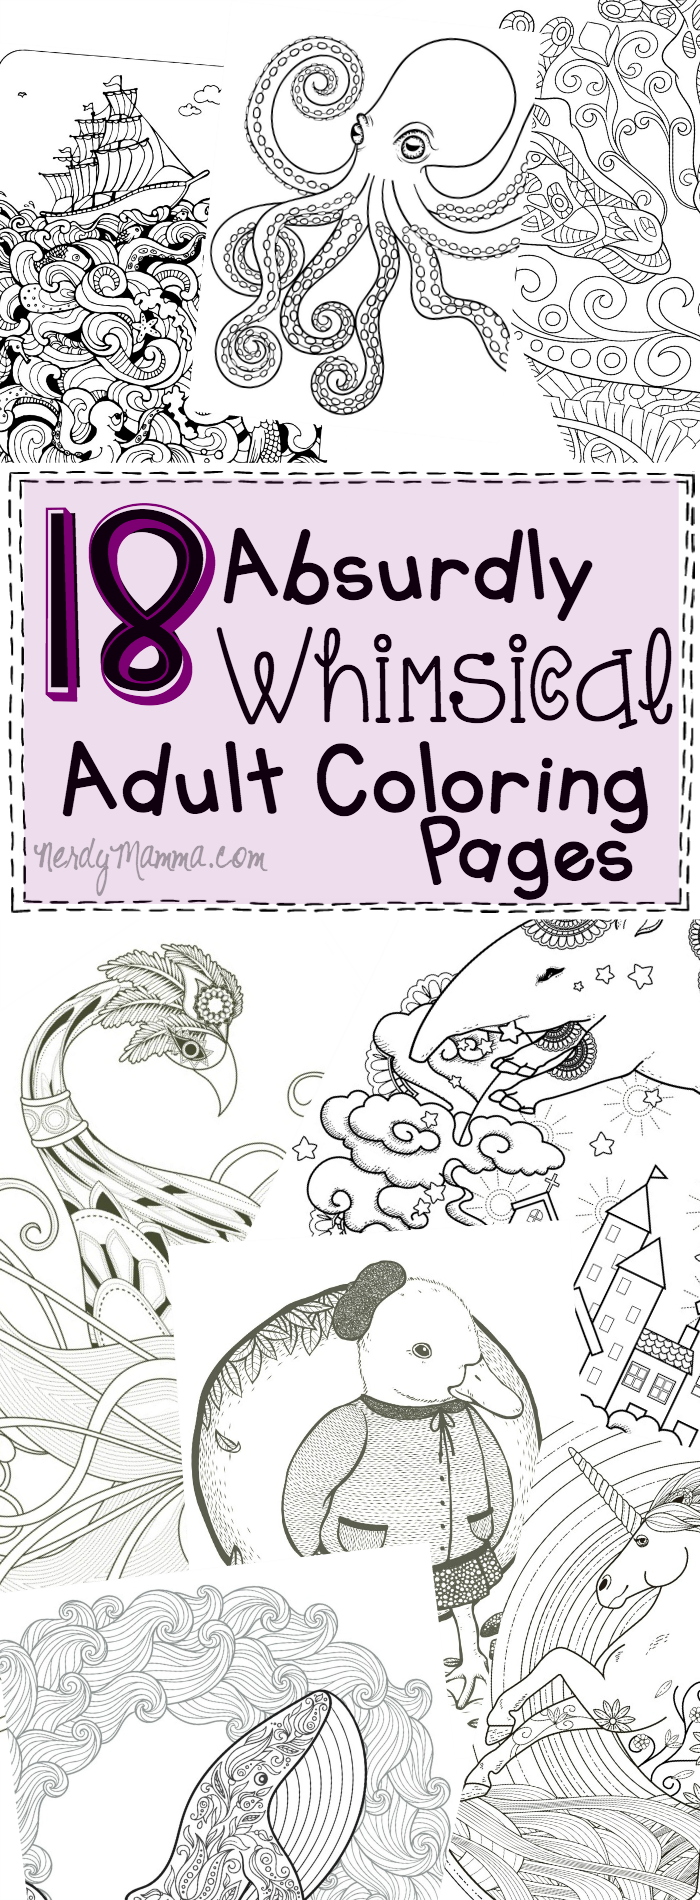 Free whimsical coloring pages for adults - 18 Absurdly Whimsical Adult Coloring Pages